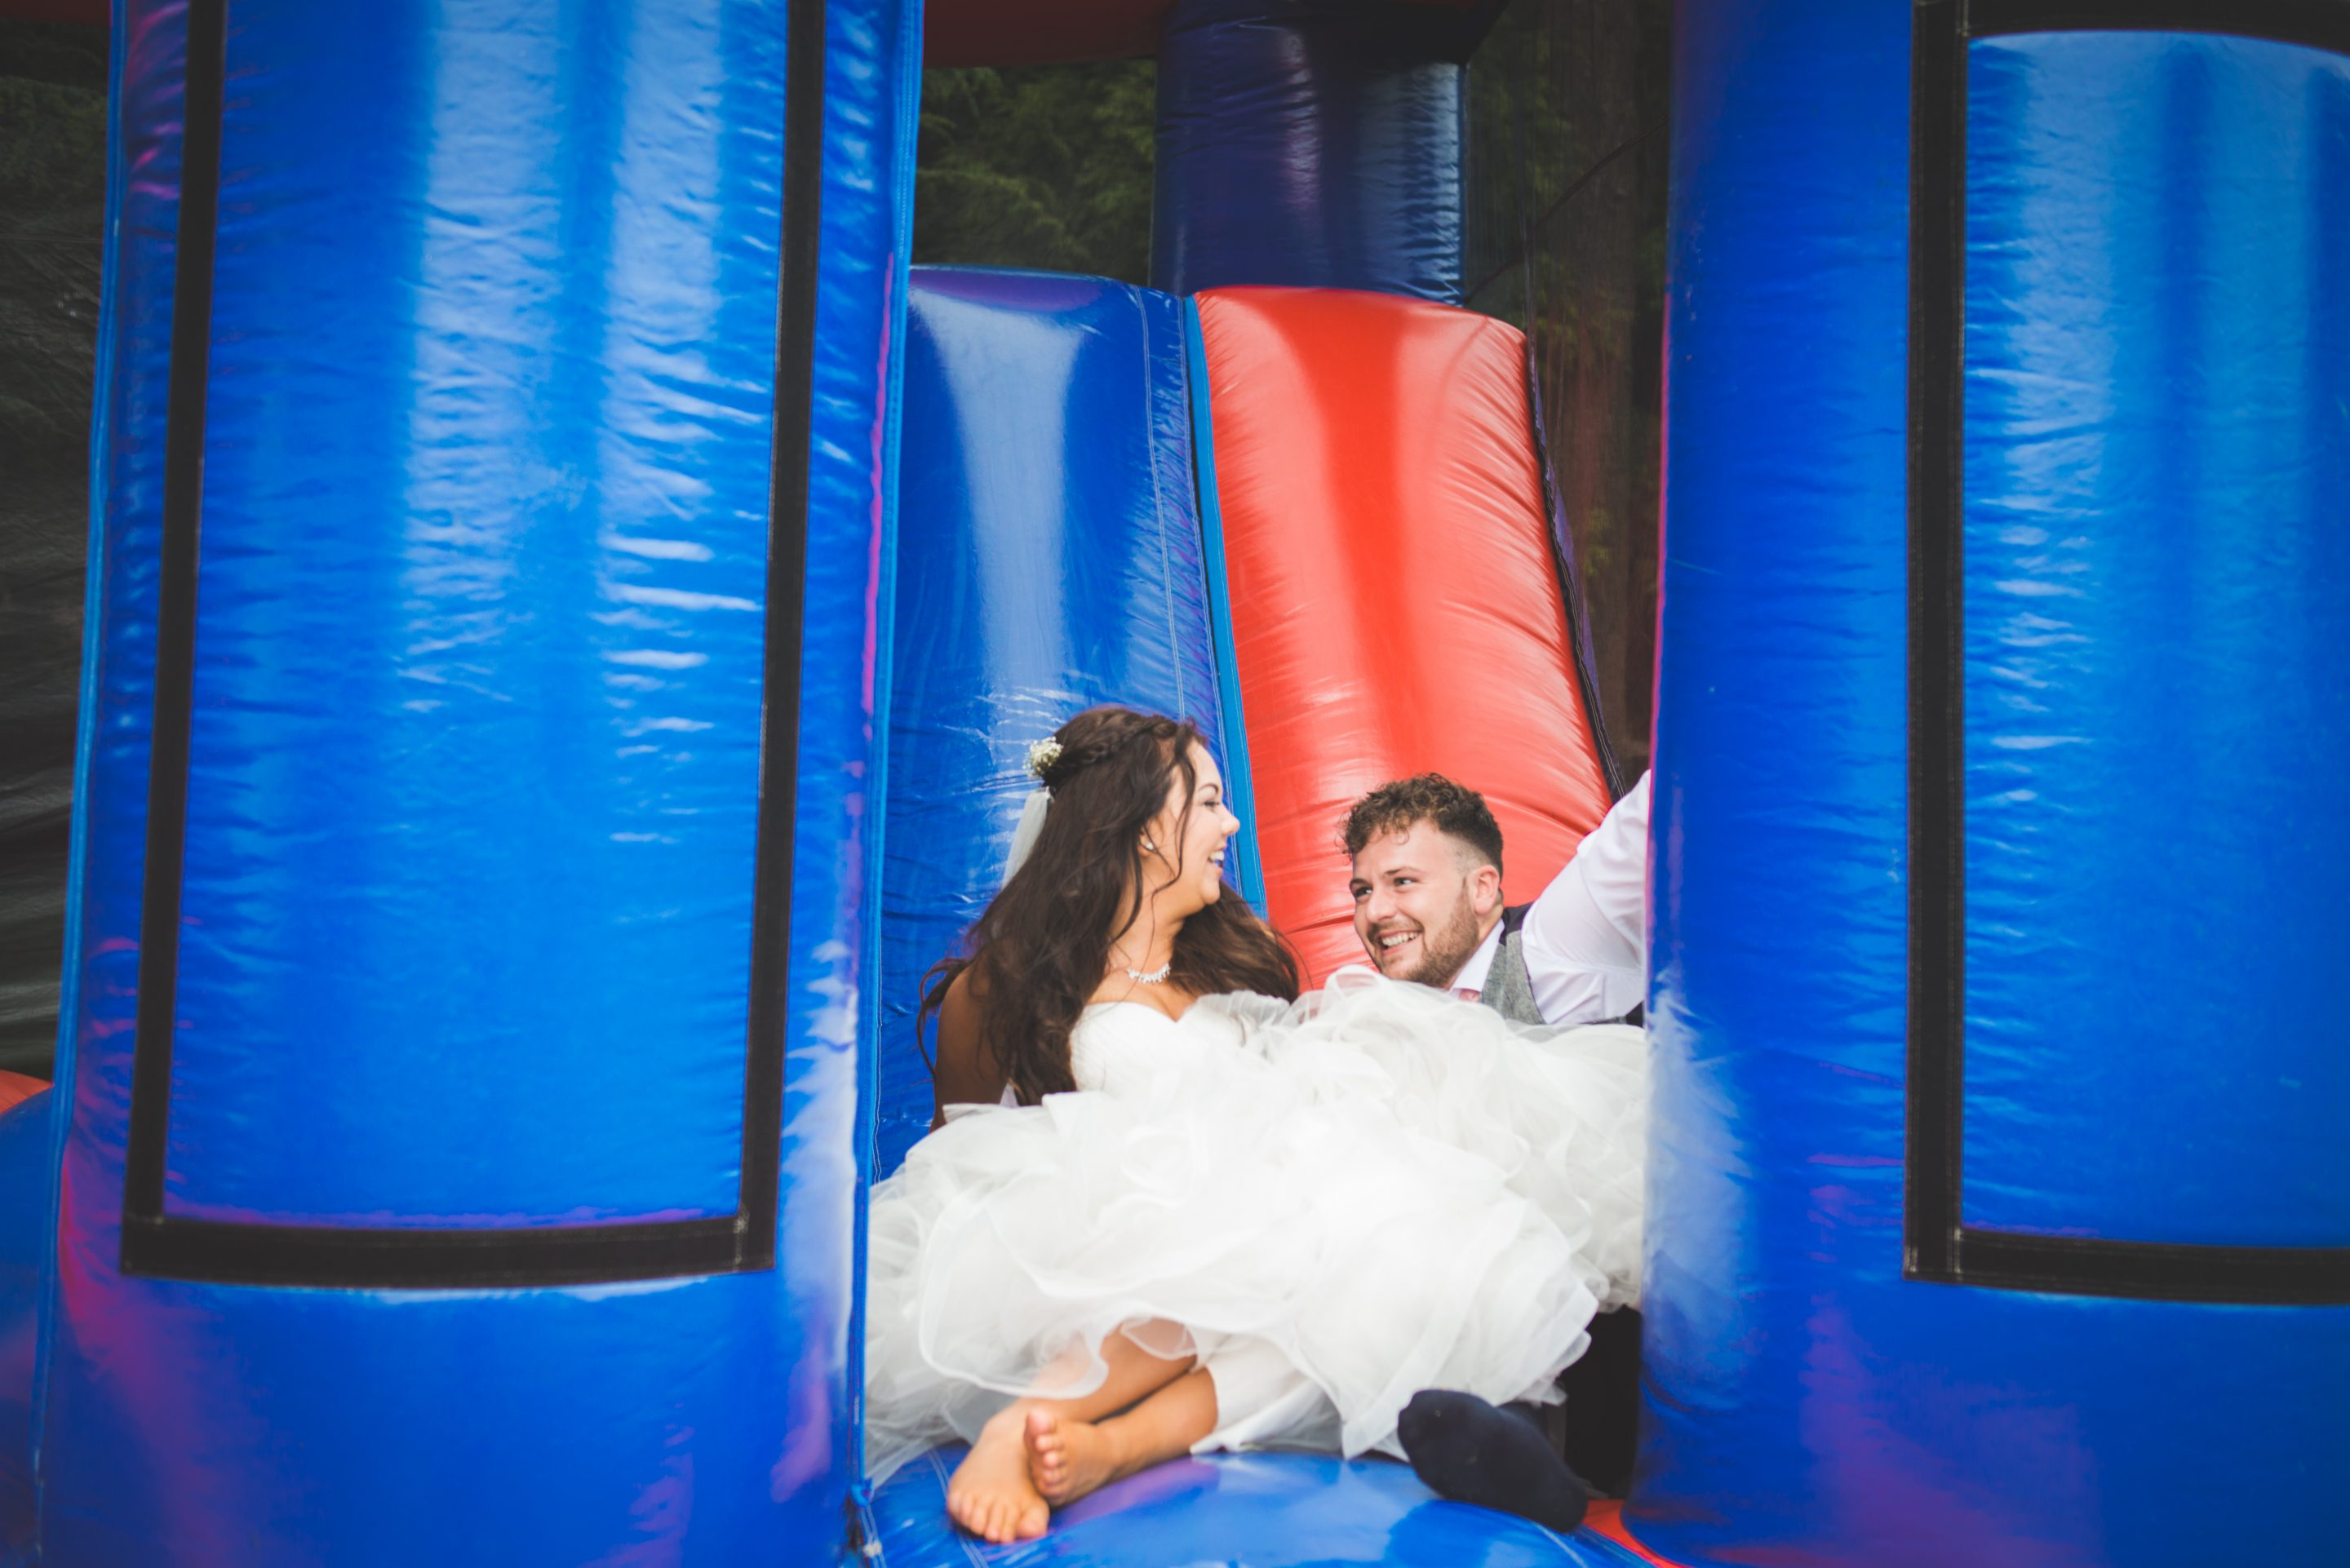 Bouncy Castle for the bride and groom